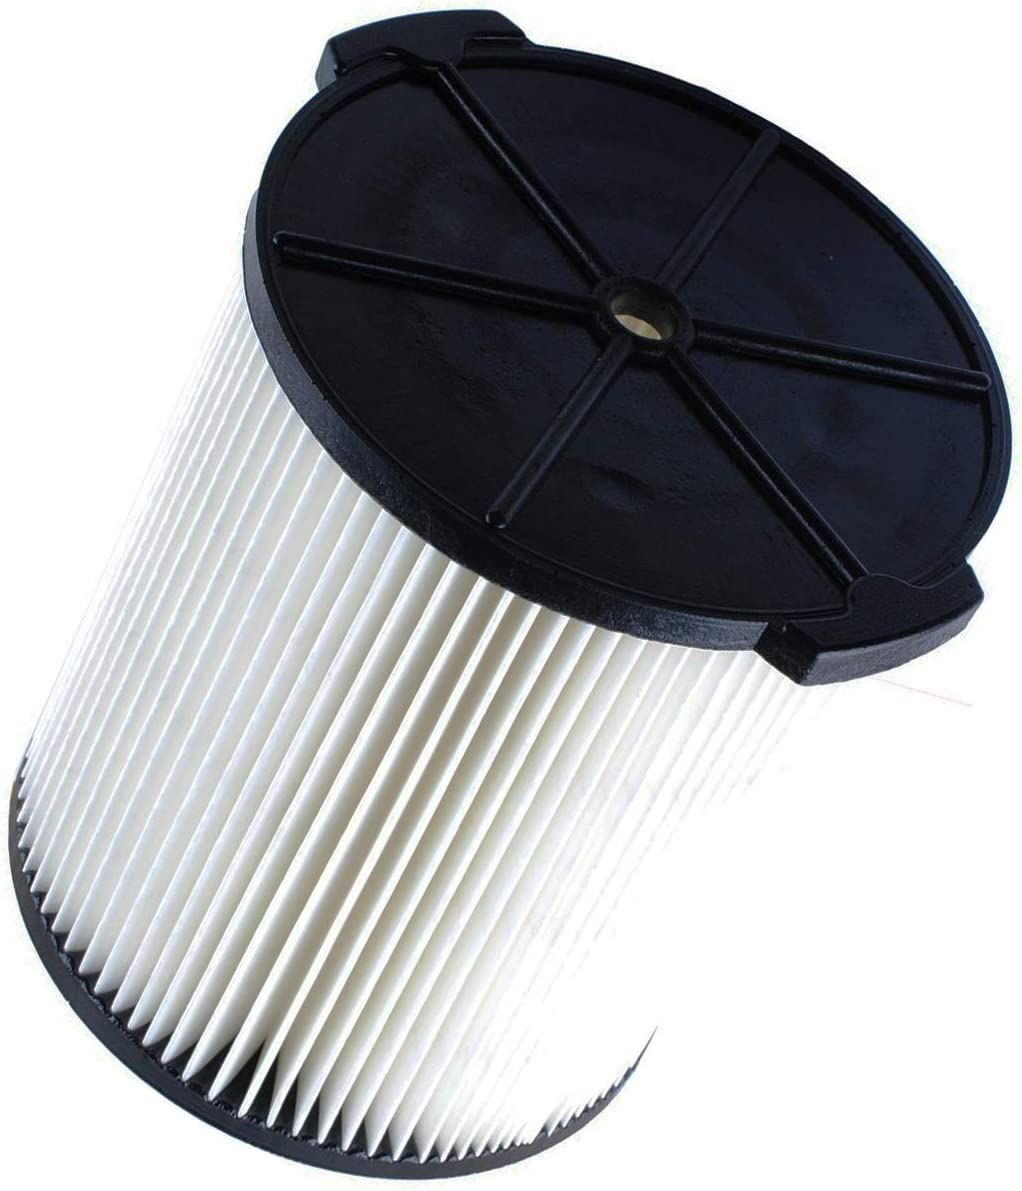 VF4000 Filter for Ridged VF4000 Wet Dry Vacuum 17816 Replacement filter for Craftsman WD5500 WD0671 RV2400A RV2600B